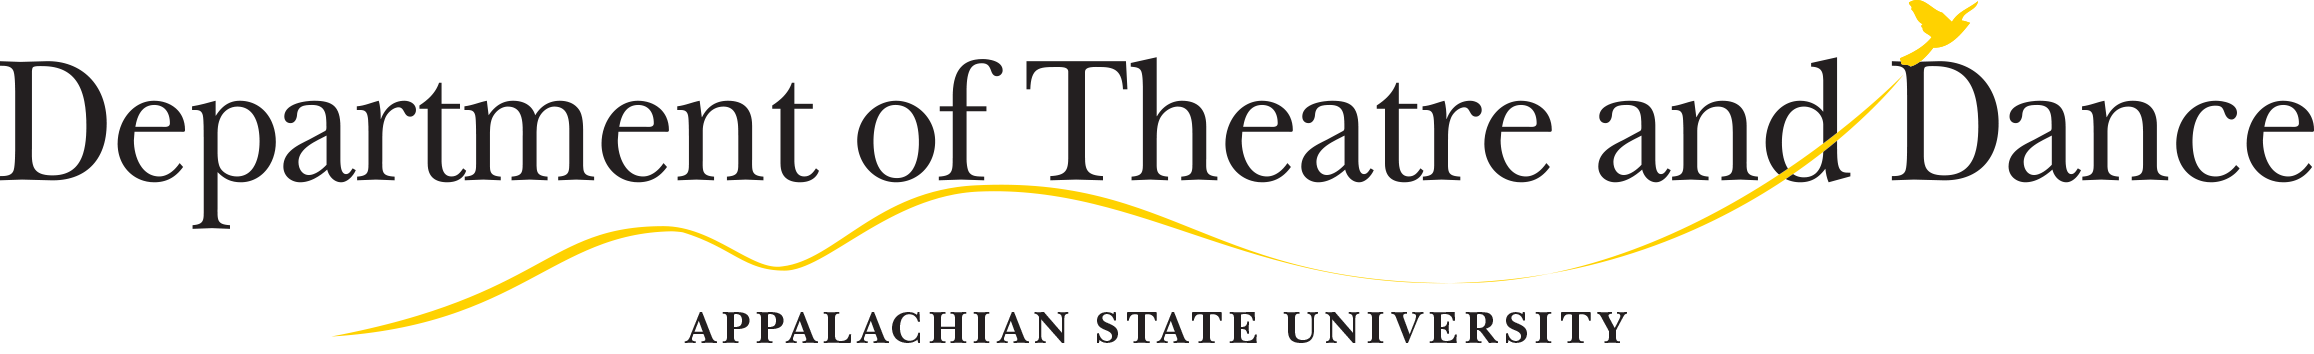 department of theatre and dance logo